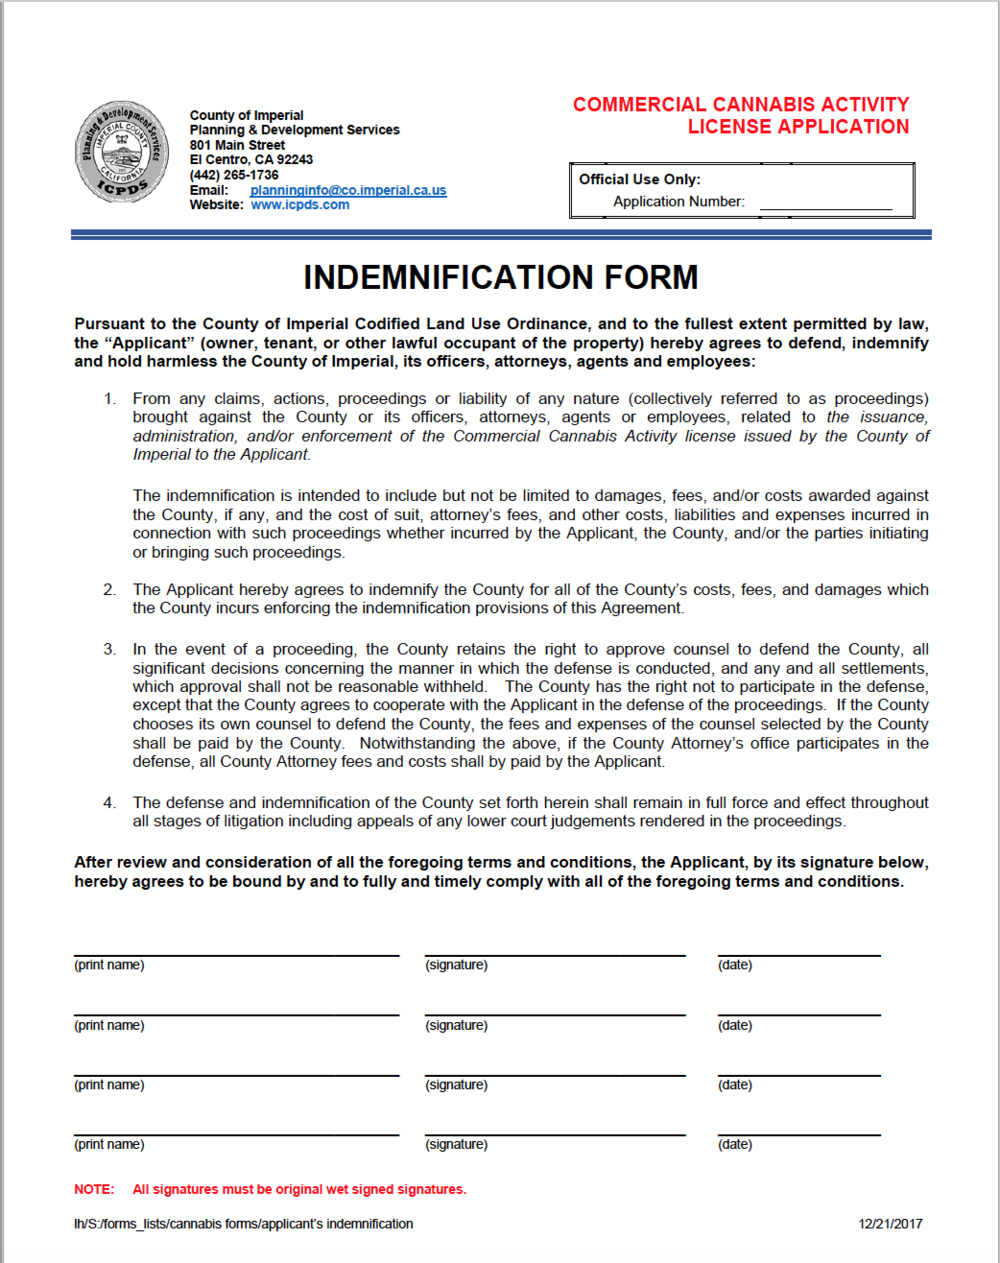 Indemnification Form 2.png